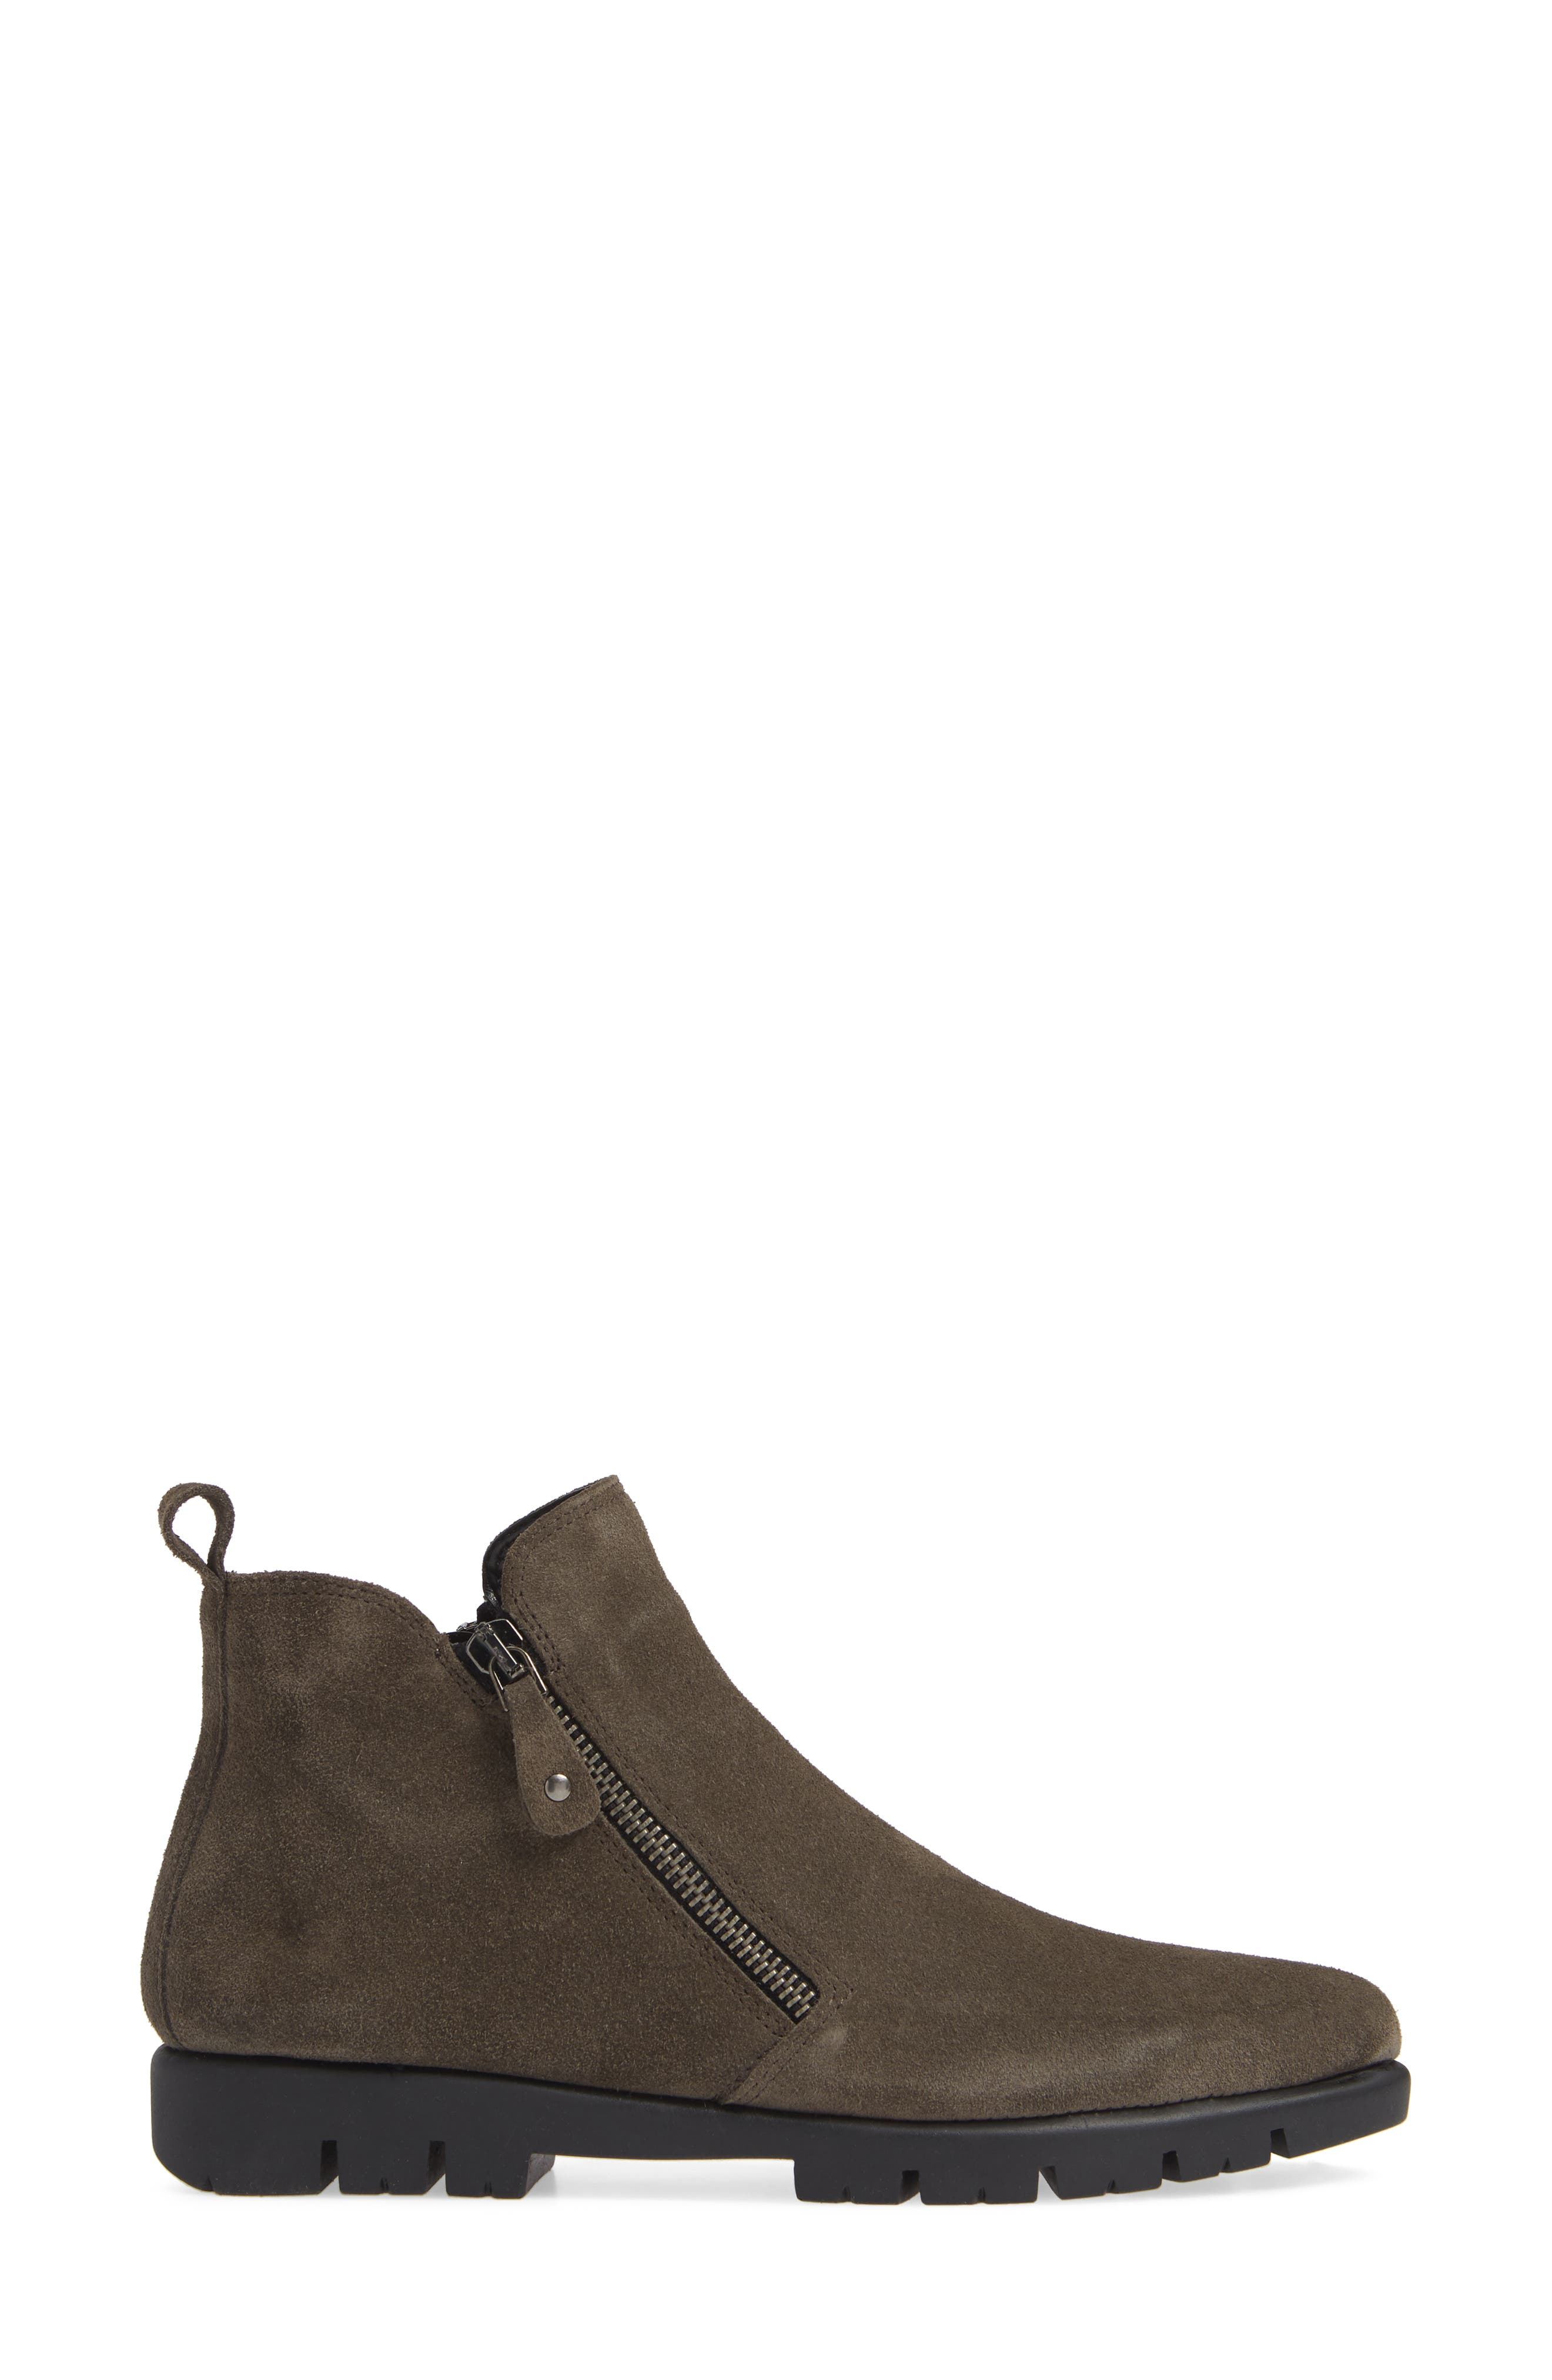 Hot Tamale Bootie,                             Alternate thumbnail 3, color,                             BROWN SUEDE